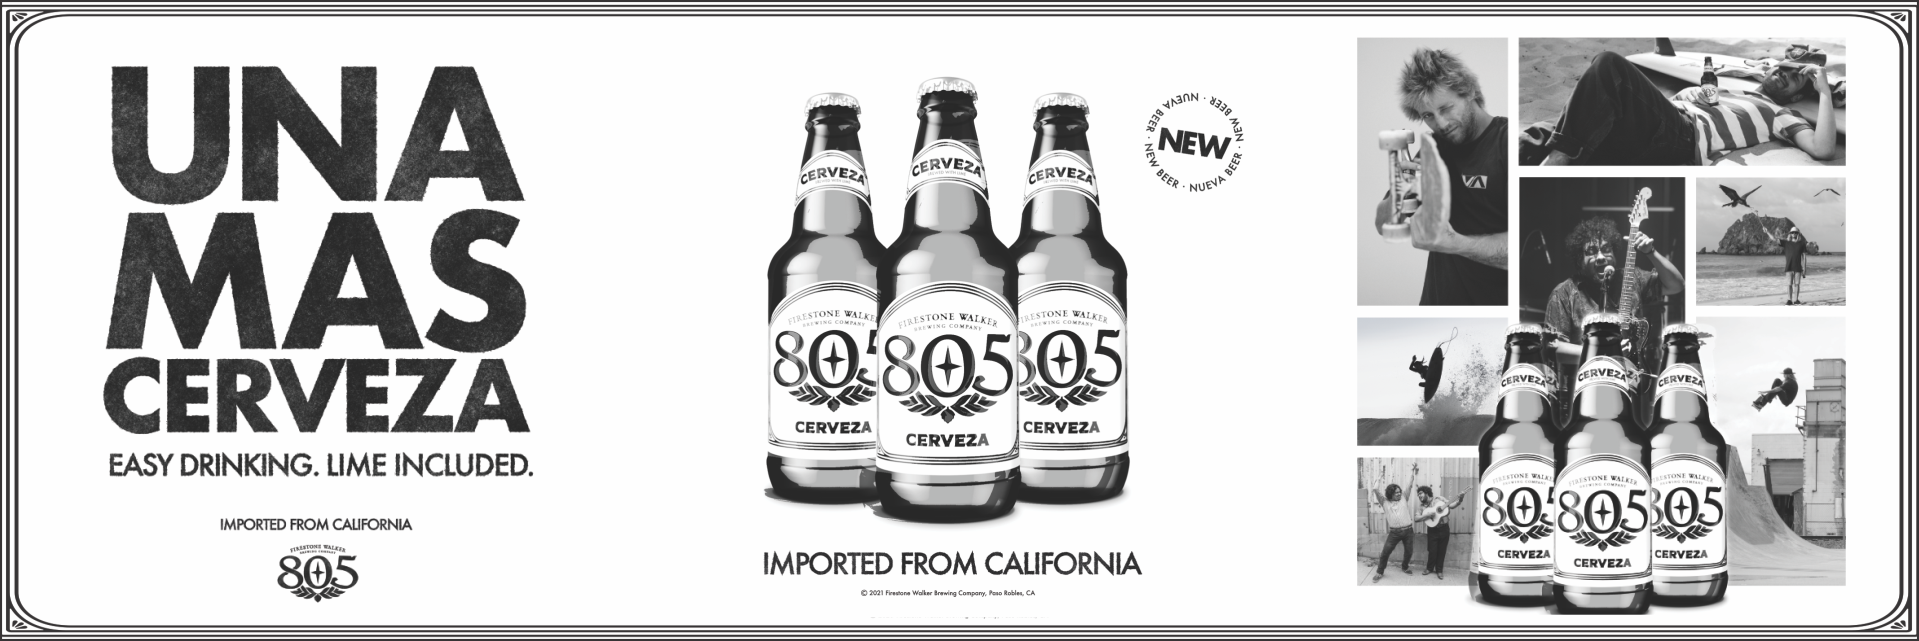 Introducing Firestone Walker 805 Cerveza